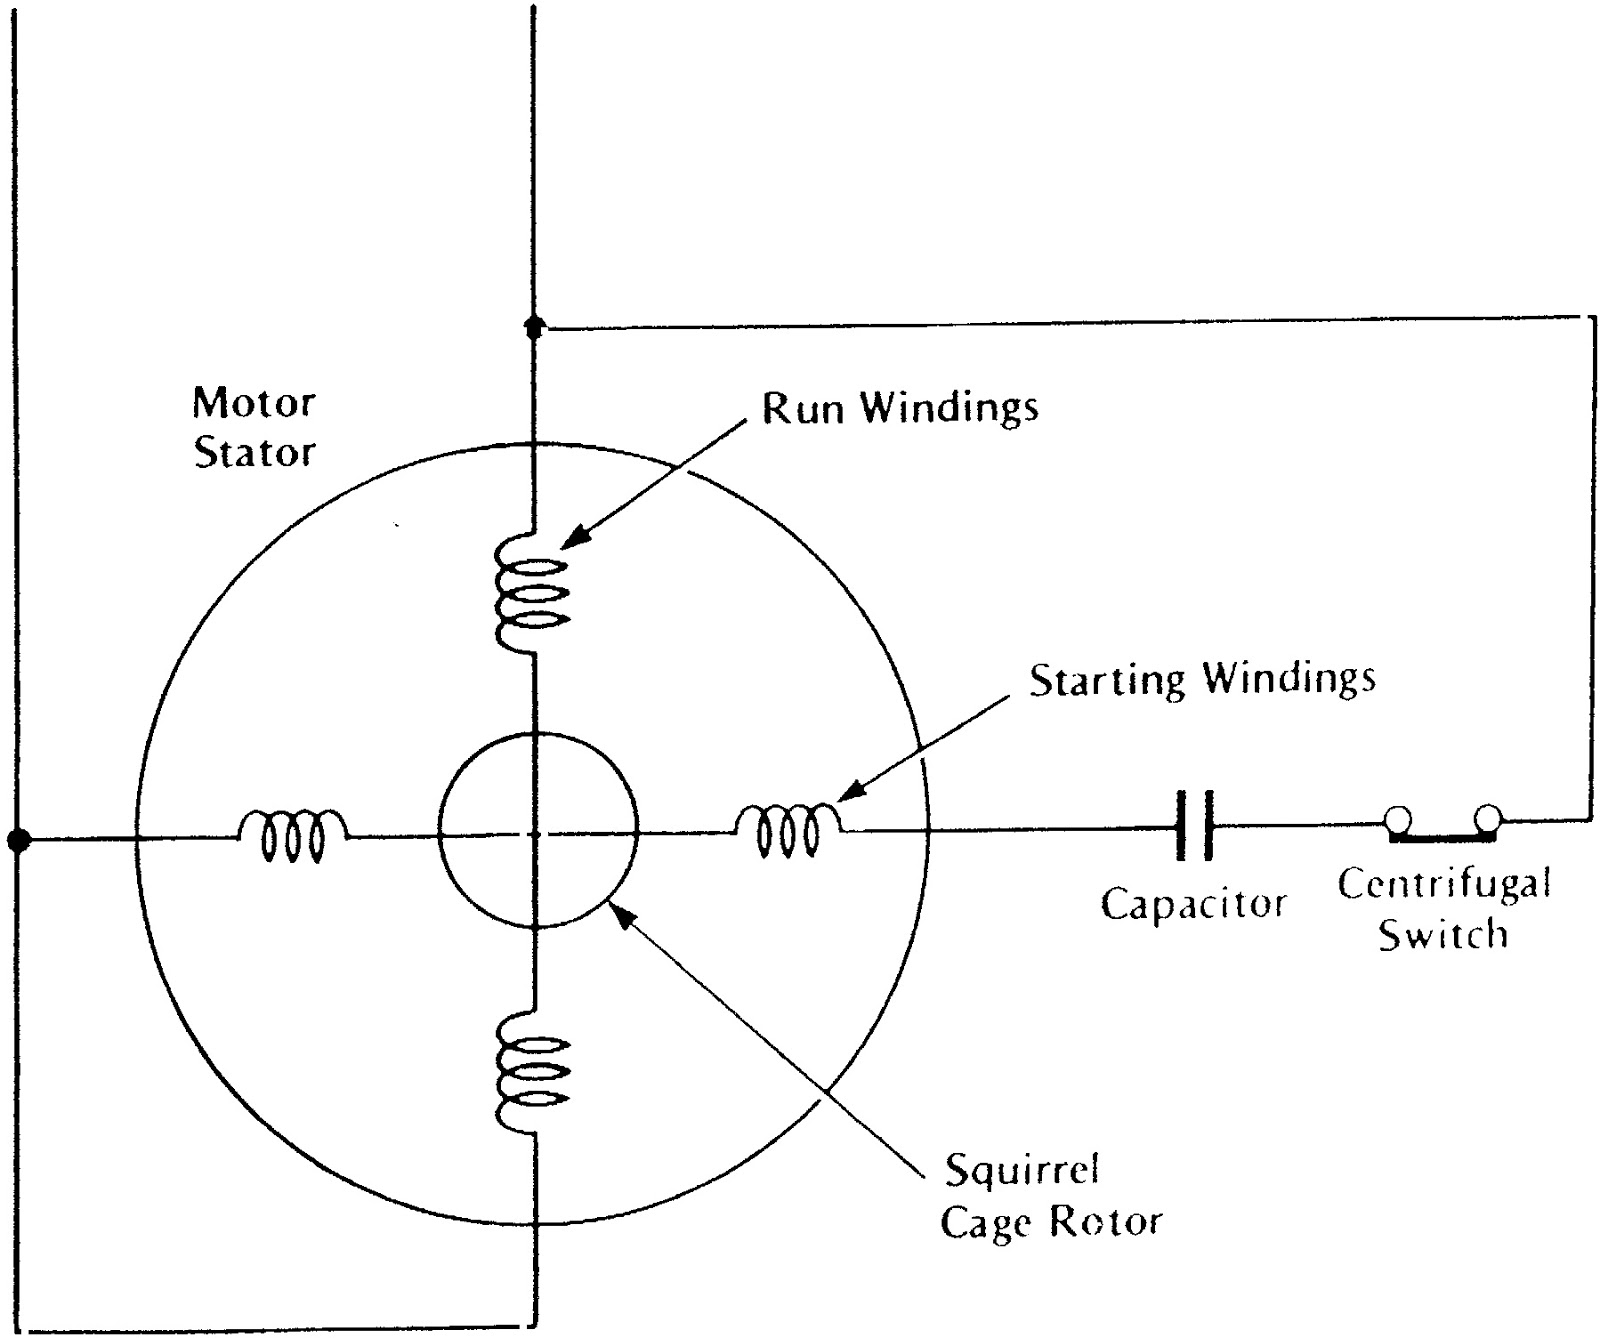 Capacitor Start Induction Motor Wiring Diagram Upright X20n Scissor Lift Engineering Photos,videos And Articels (engineering Search Engine): Chapter 2 Principles Of ...